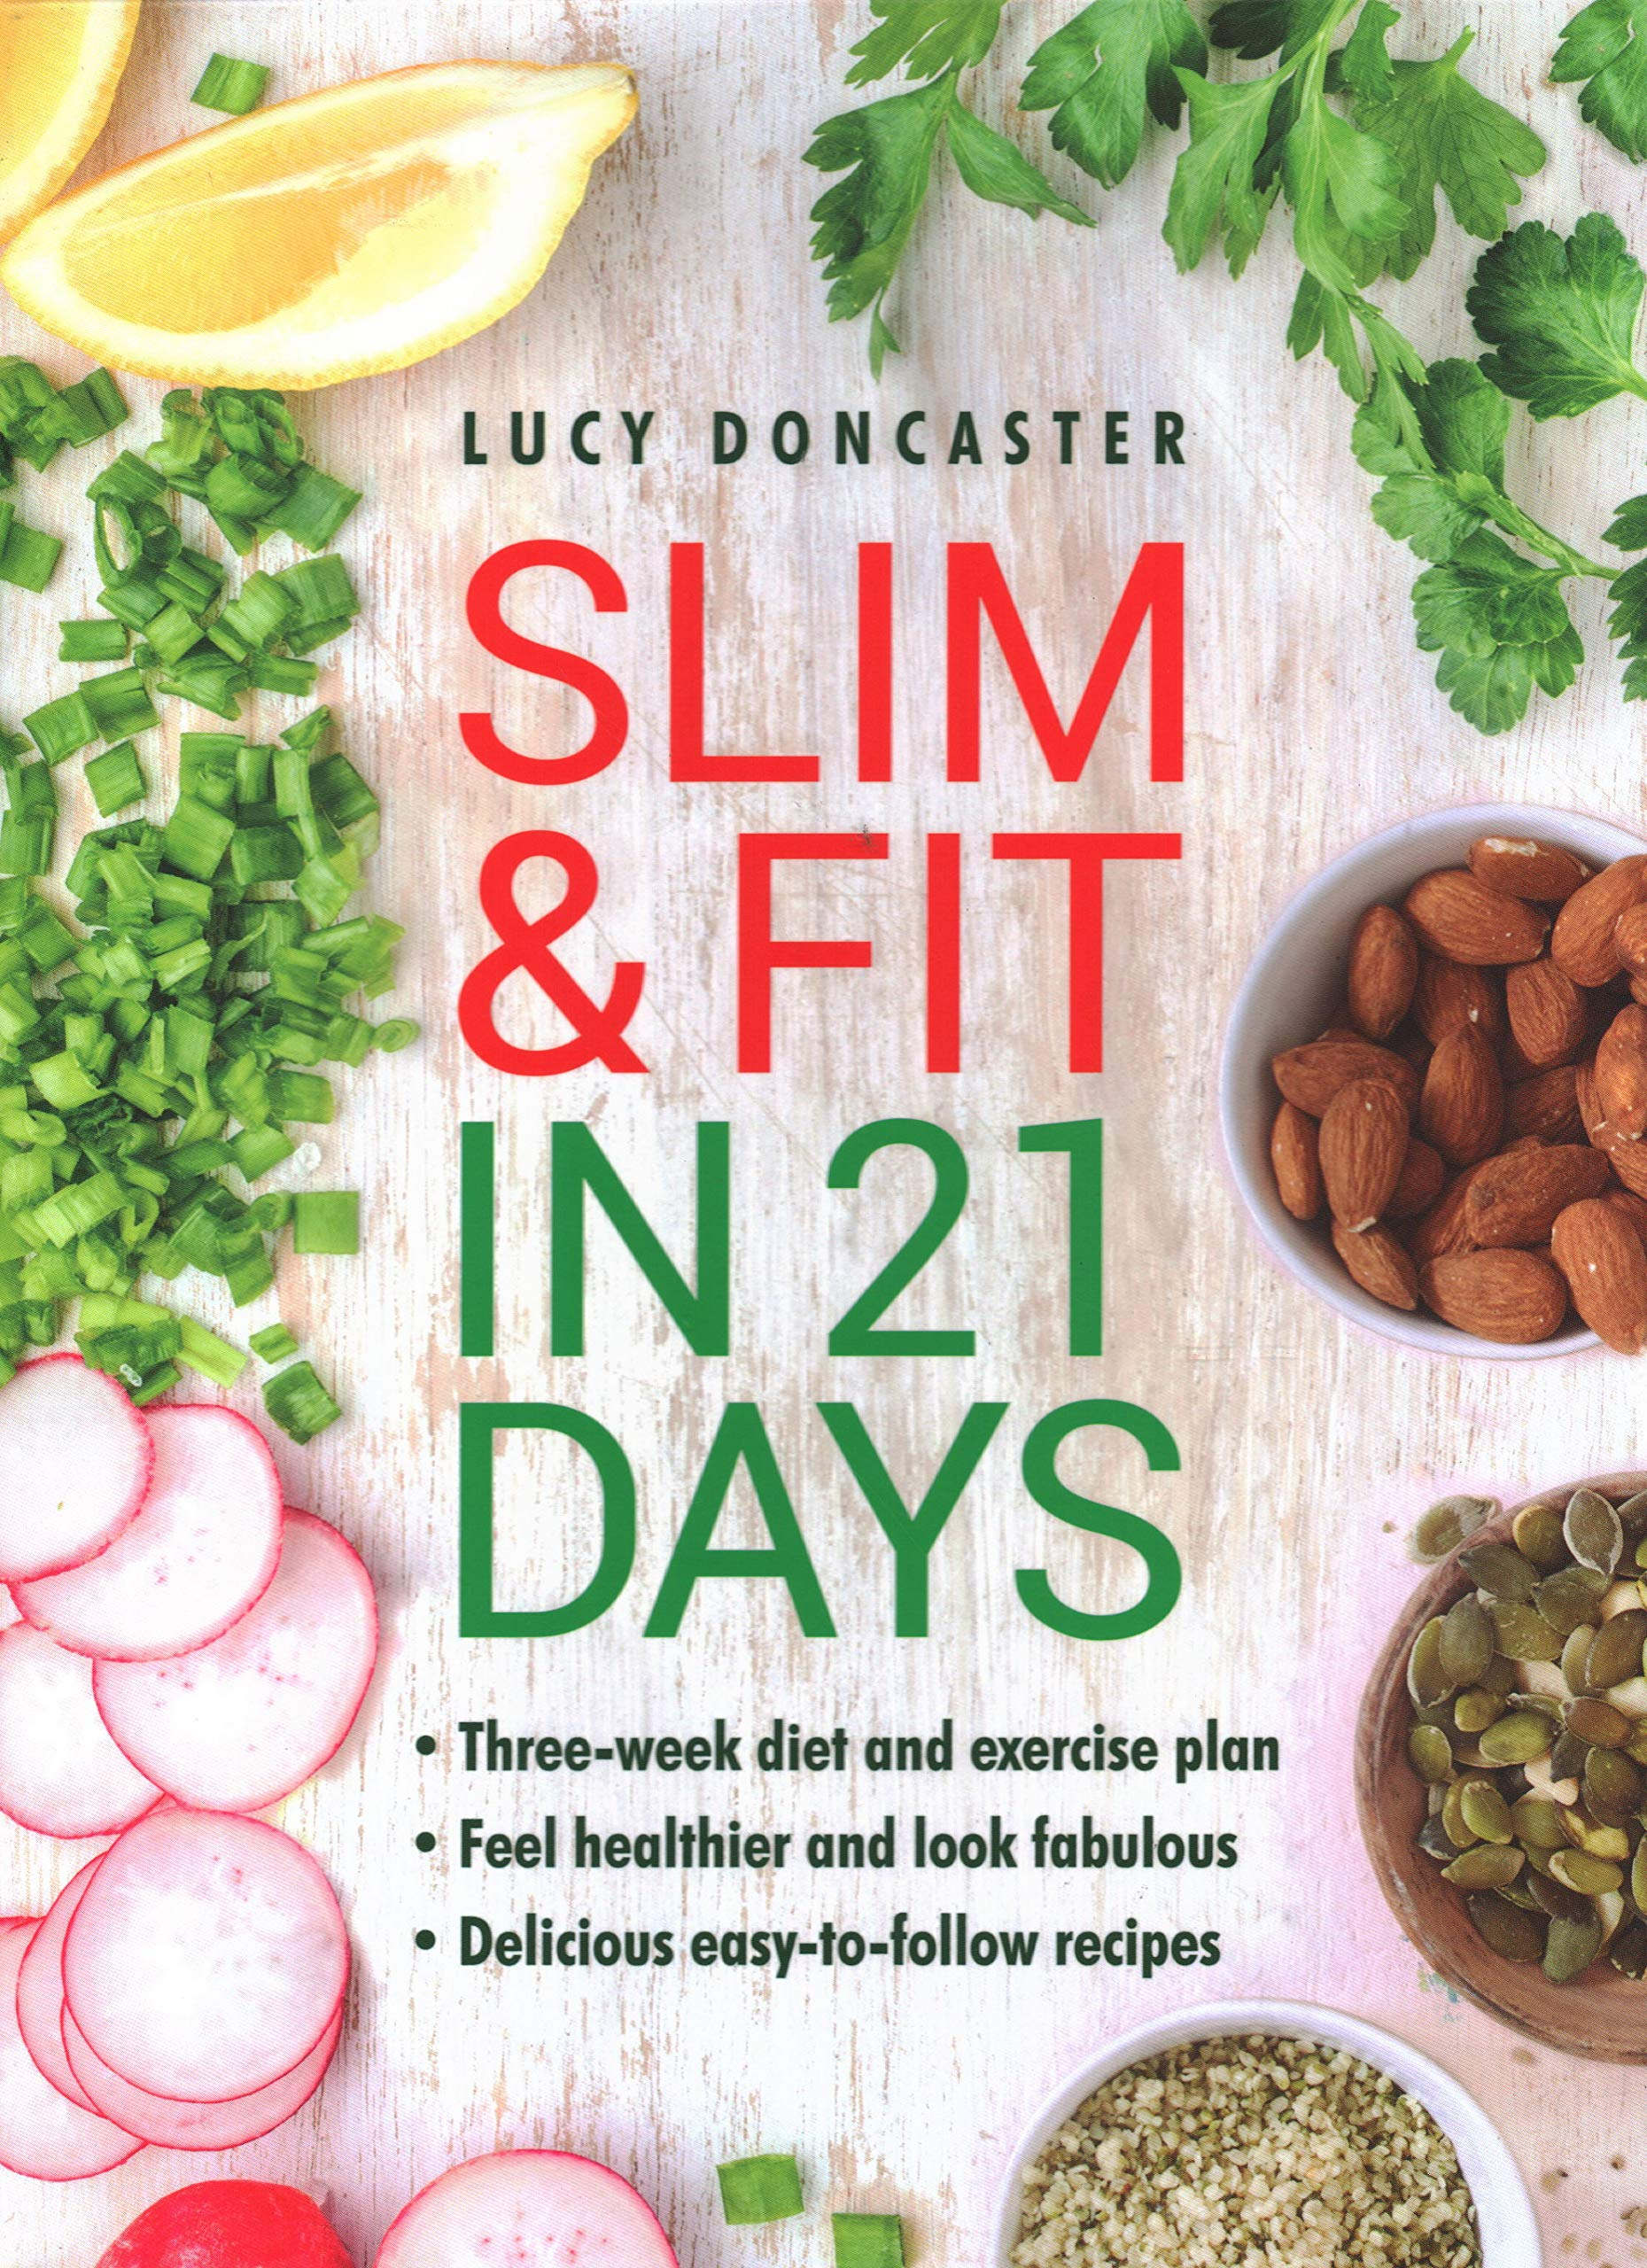 Slim & Fit in 21 Days: Three-week diet and exercise plan * Feel healthier  and look fabulous * Easy-to-follow with delicious recipes: Amazon.co.uk:  Lucy ...